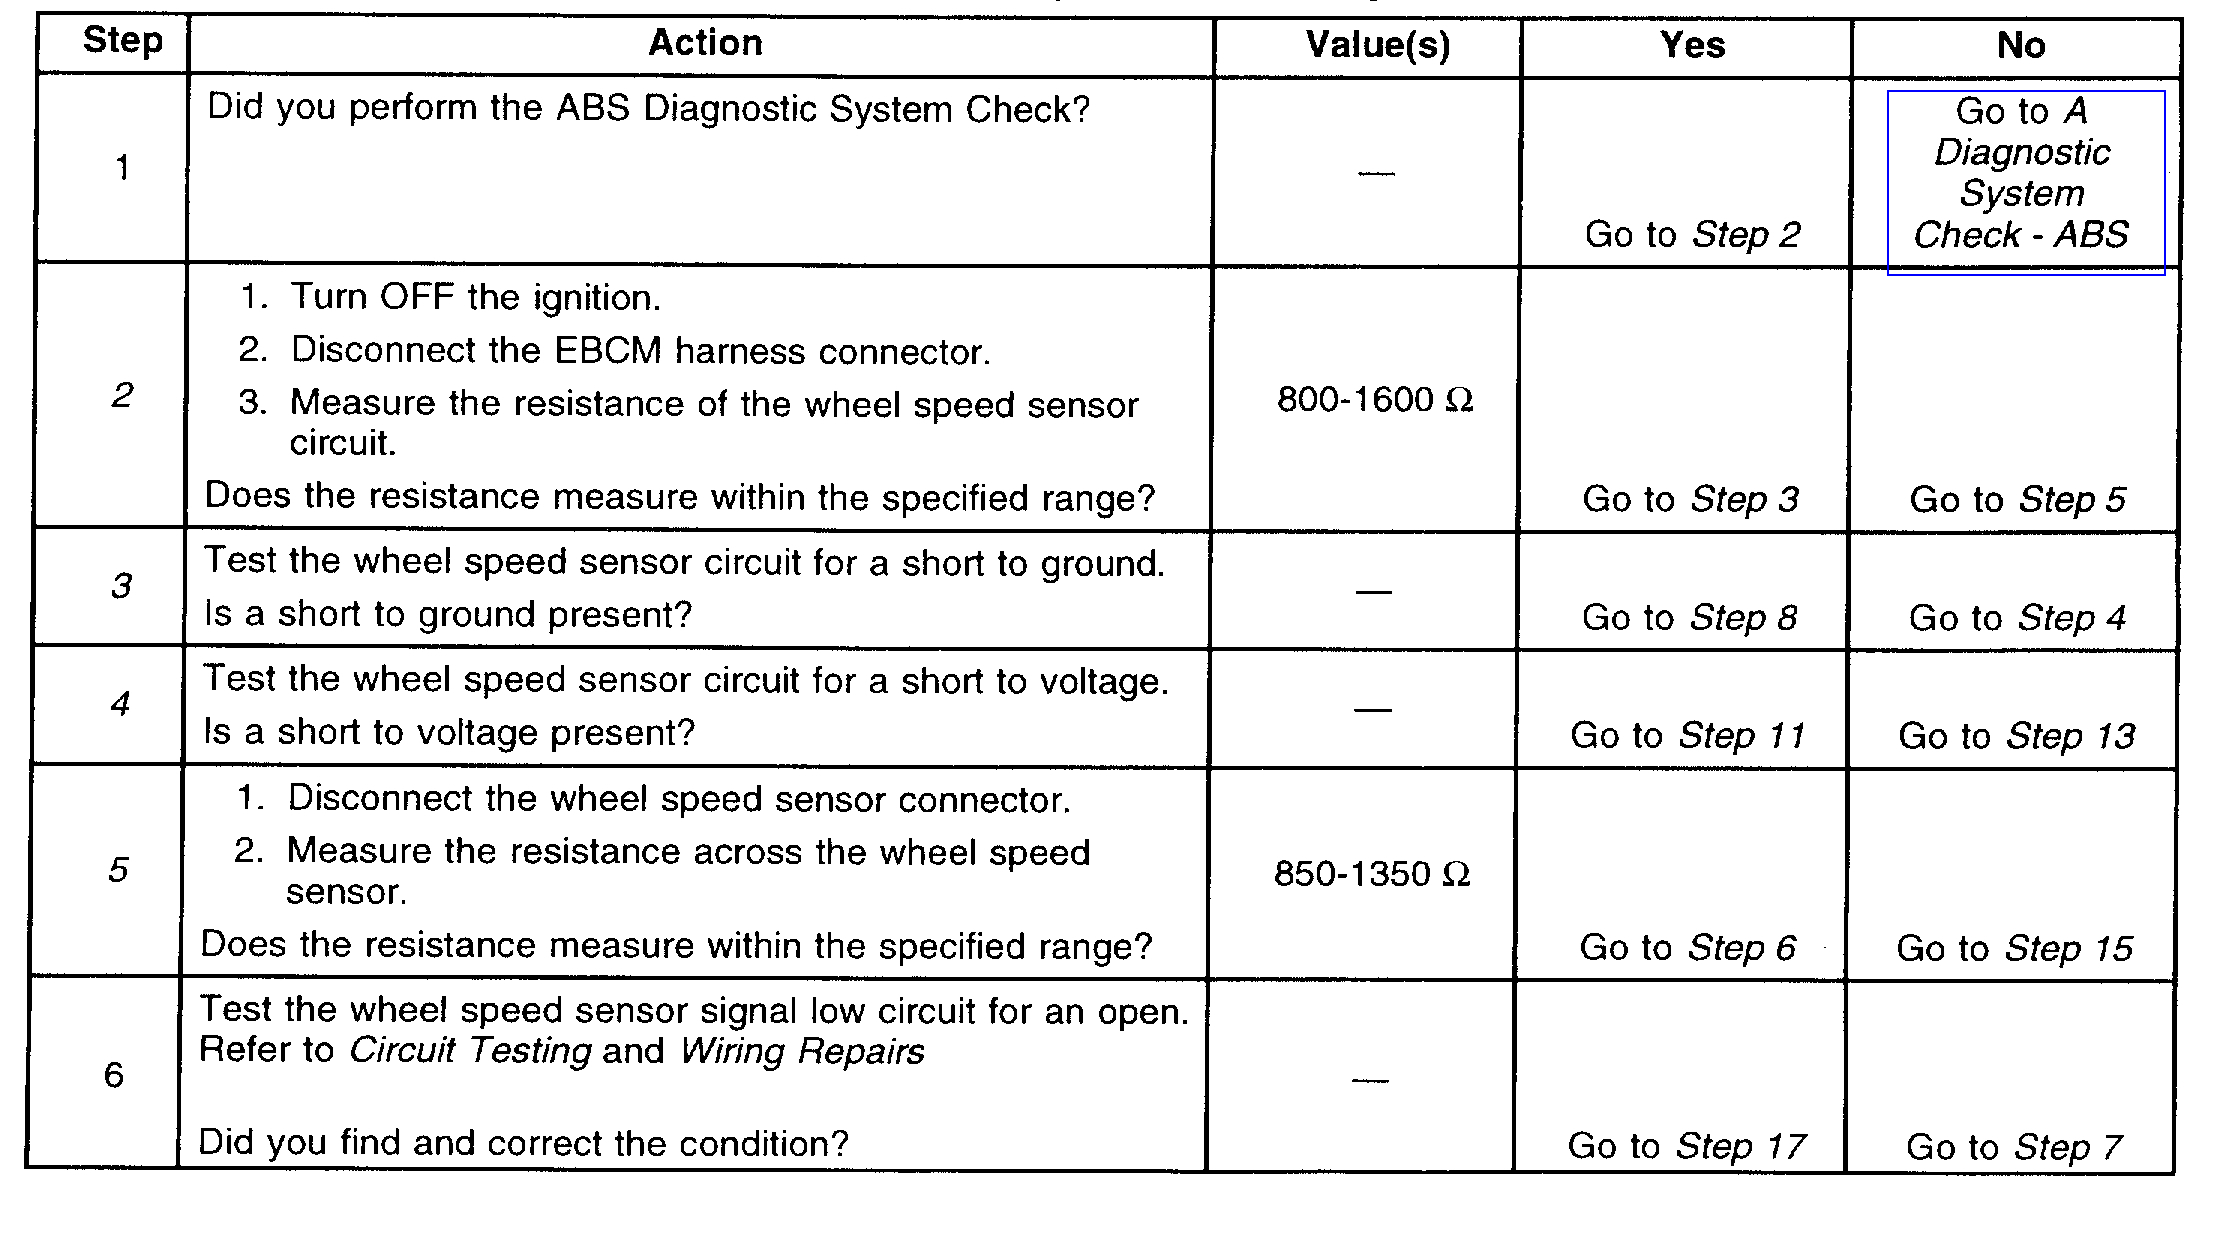 Vibration When Accelerating, Codes C1228 and C1235